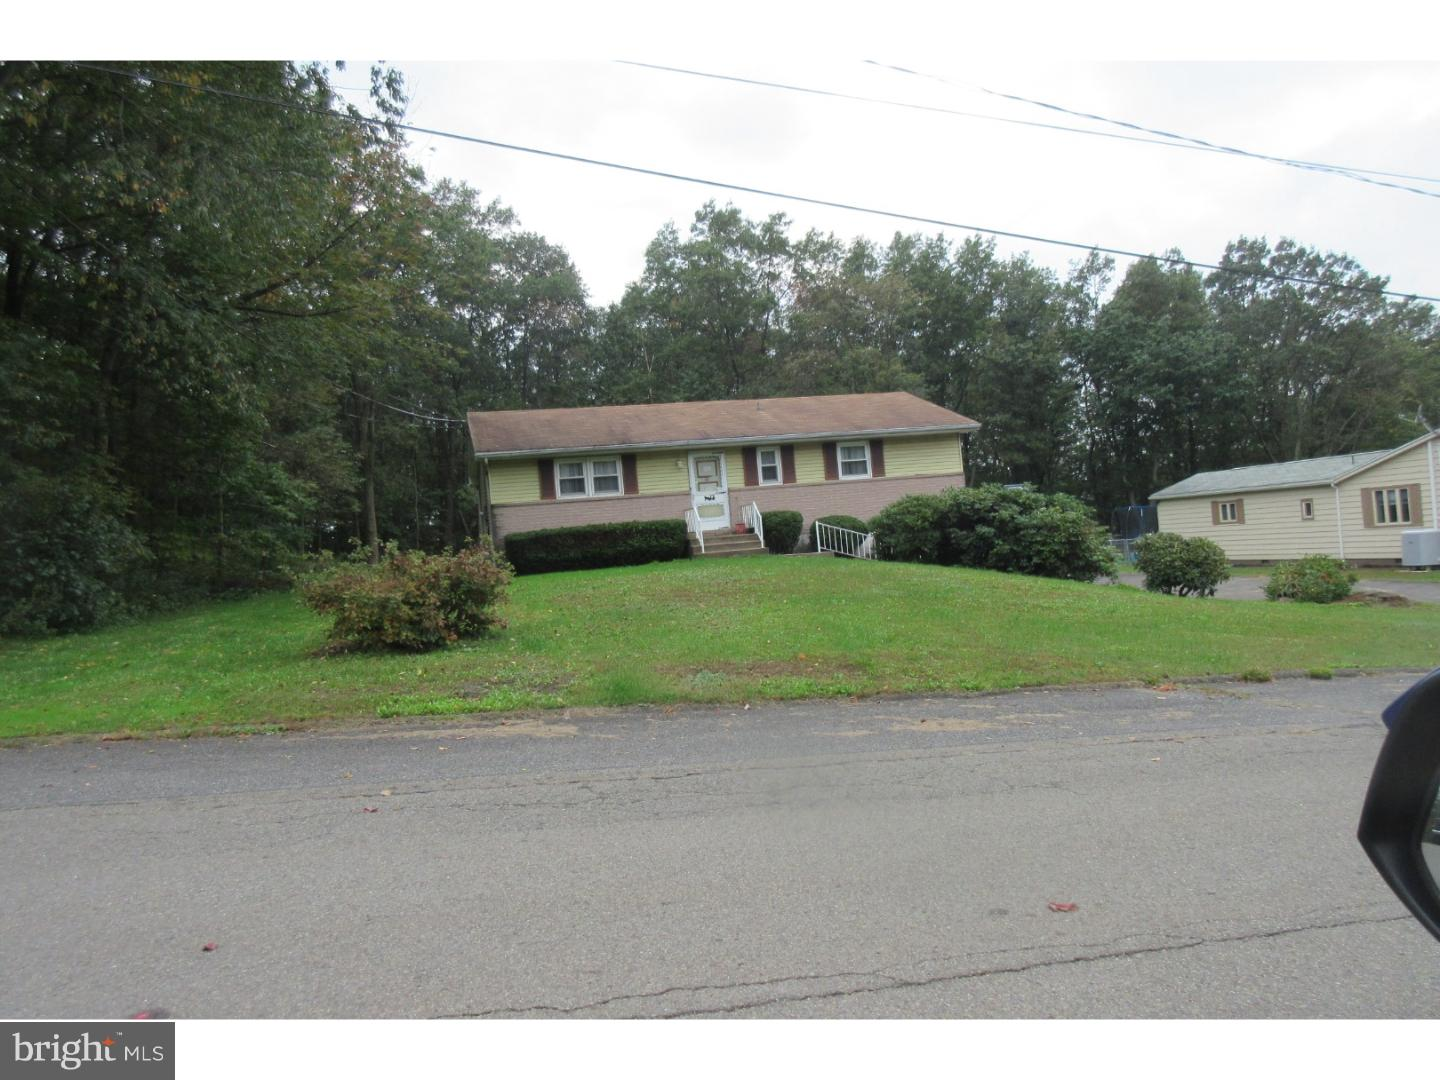 102 N SPENCER STREET, FRACKVILLE, PA 17931